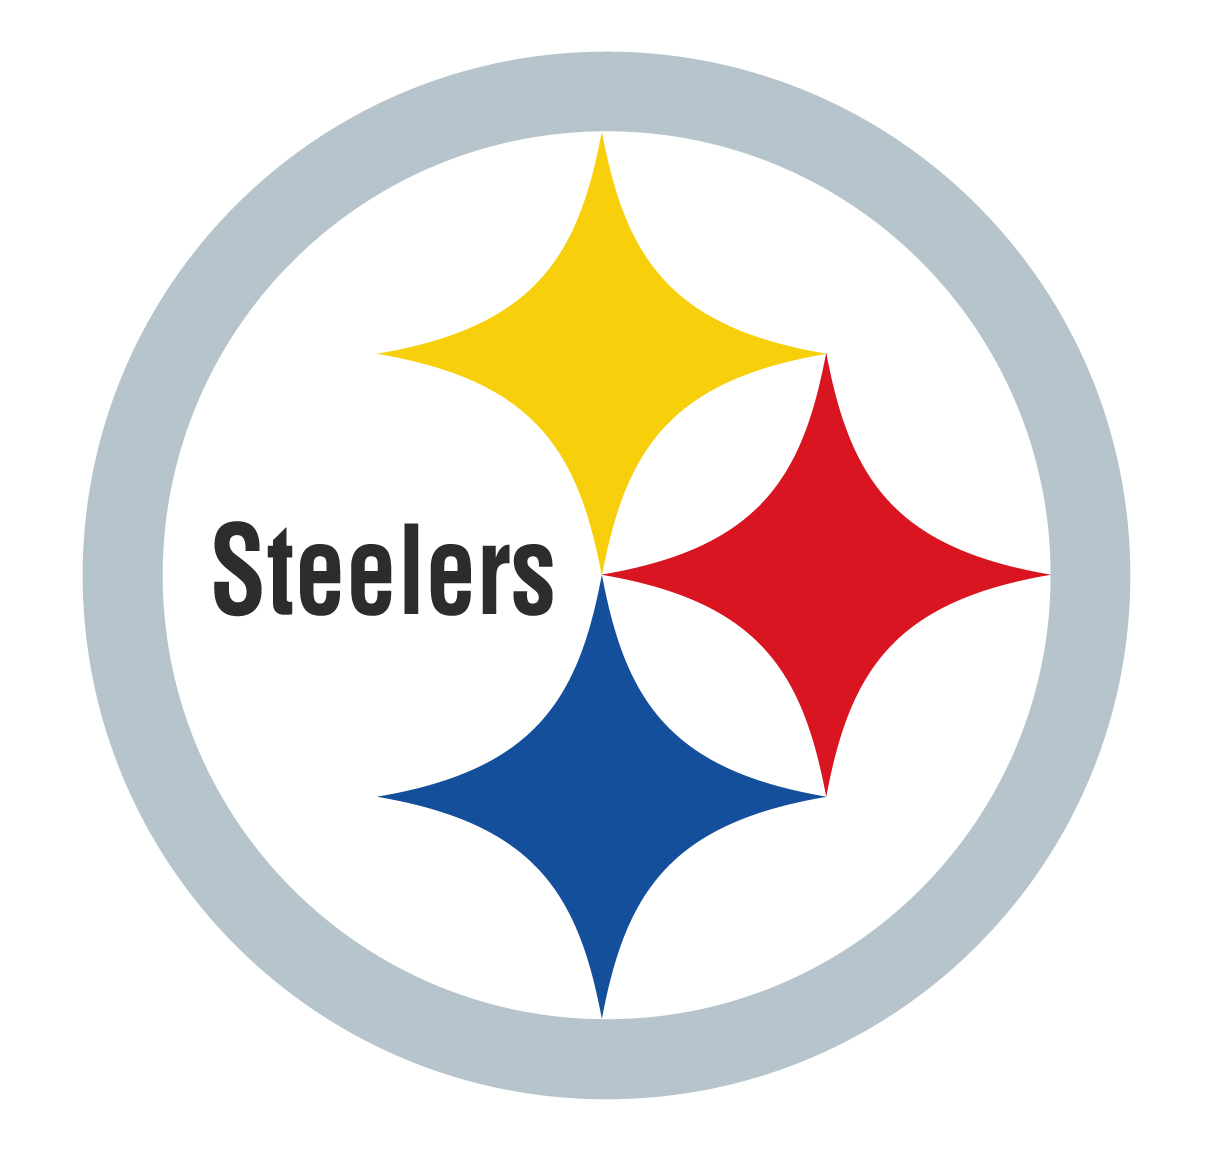 13 Steelers Logo Vector Images